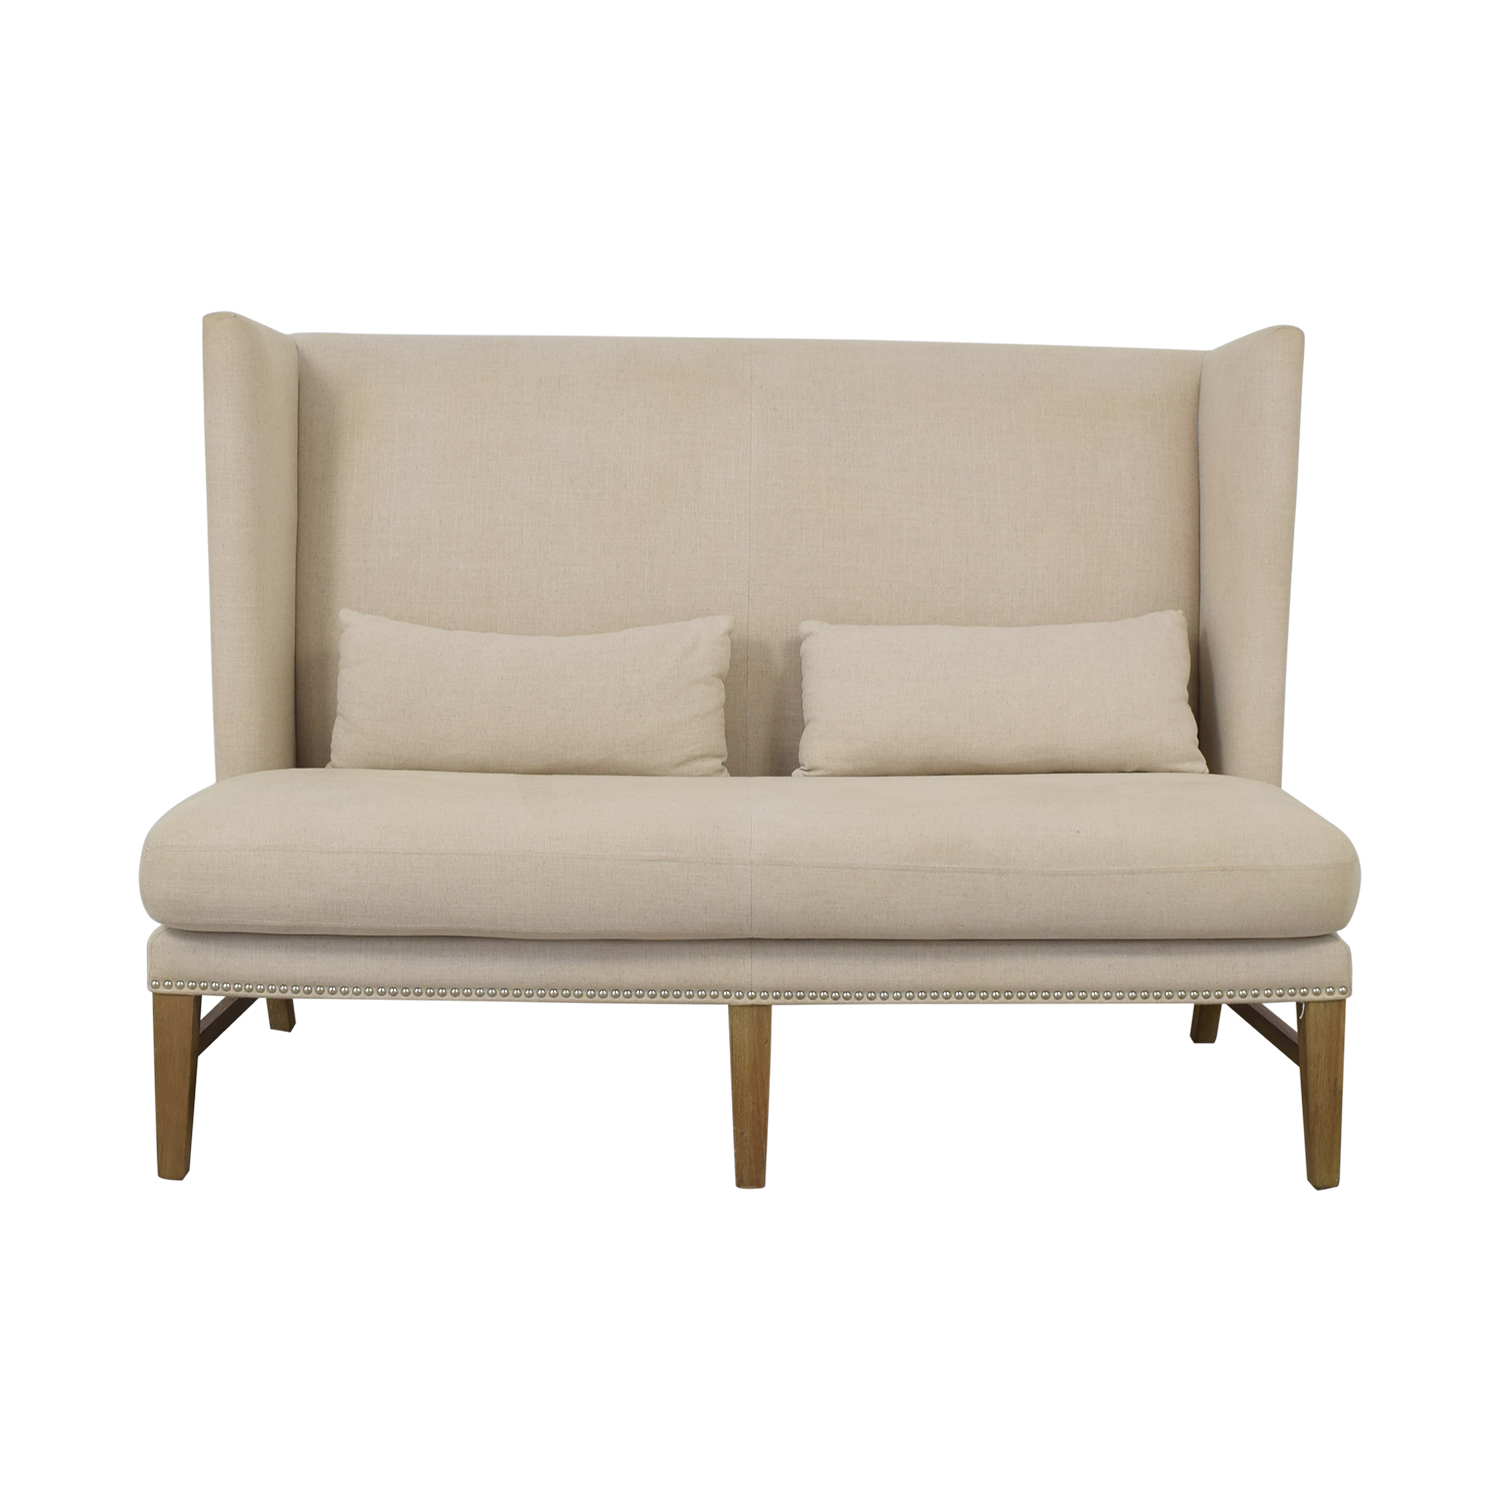 Sunpan Sunpan '5West' Malibu Linen Fabric Upholstered Loveseat ma